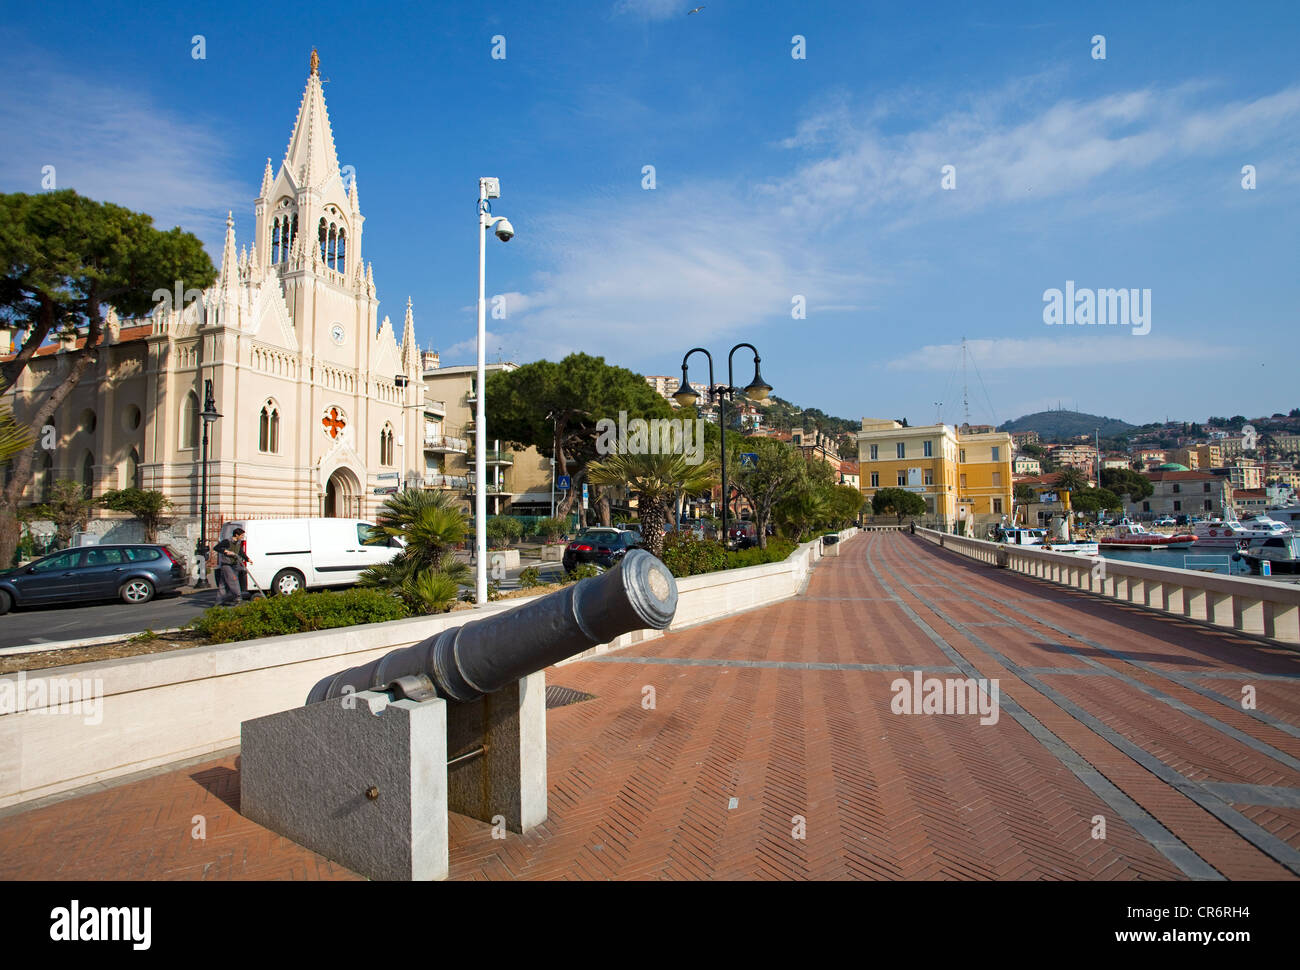 Promenade at Porto Maurizio, Church of the sailors, , port city on the Ligurian coast, Riviera di Ponente, Liguria, - Stock Image